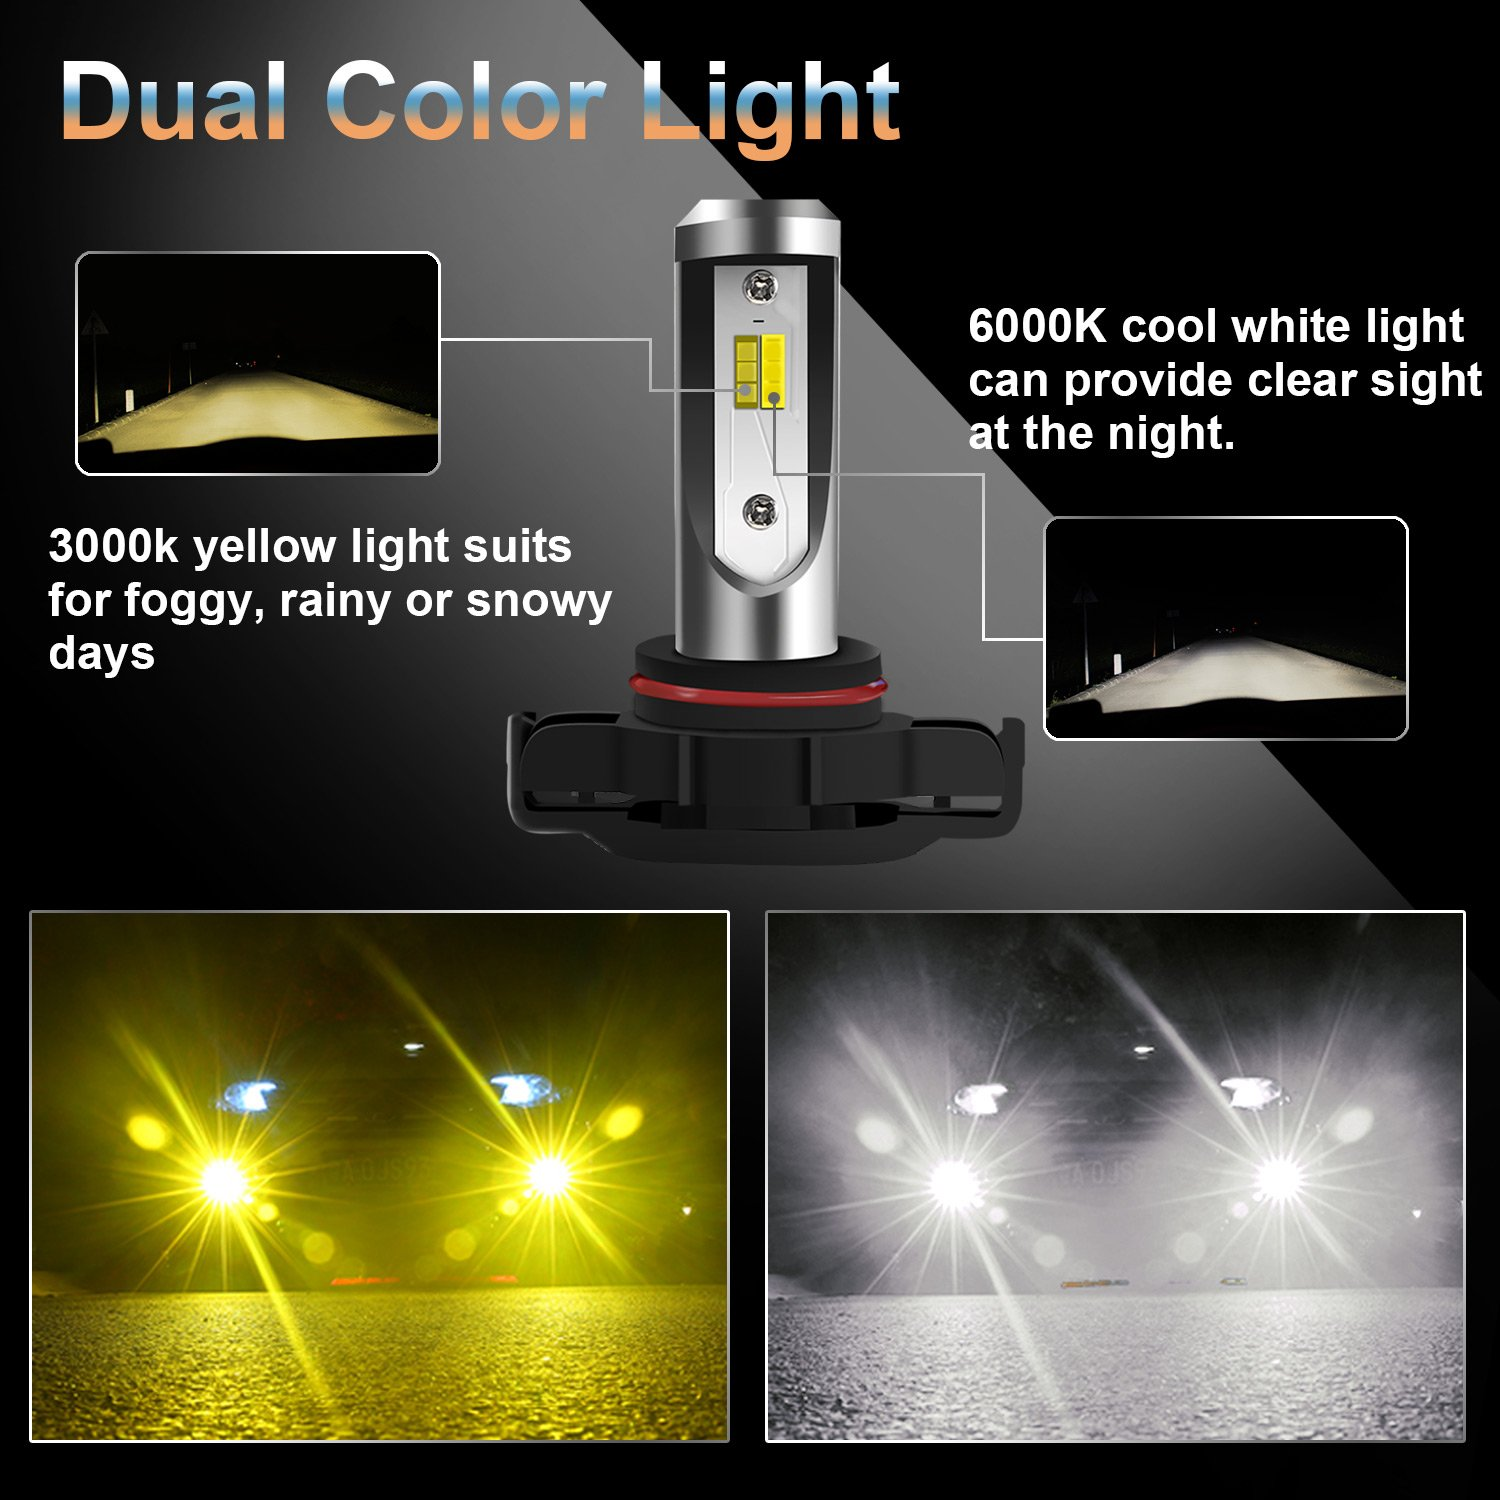 Win Power PSX24w / 5202 Fog Light H16 Led Headlight Bulb Conversion Kit Dual Color For Jeep Grand Cherokee Wrangler Trucks Cars DRL Lights Kit Replacement Bulb 3000K Yellow 6000K White (Pack of 2) by Win Power (Image #2)